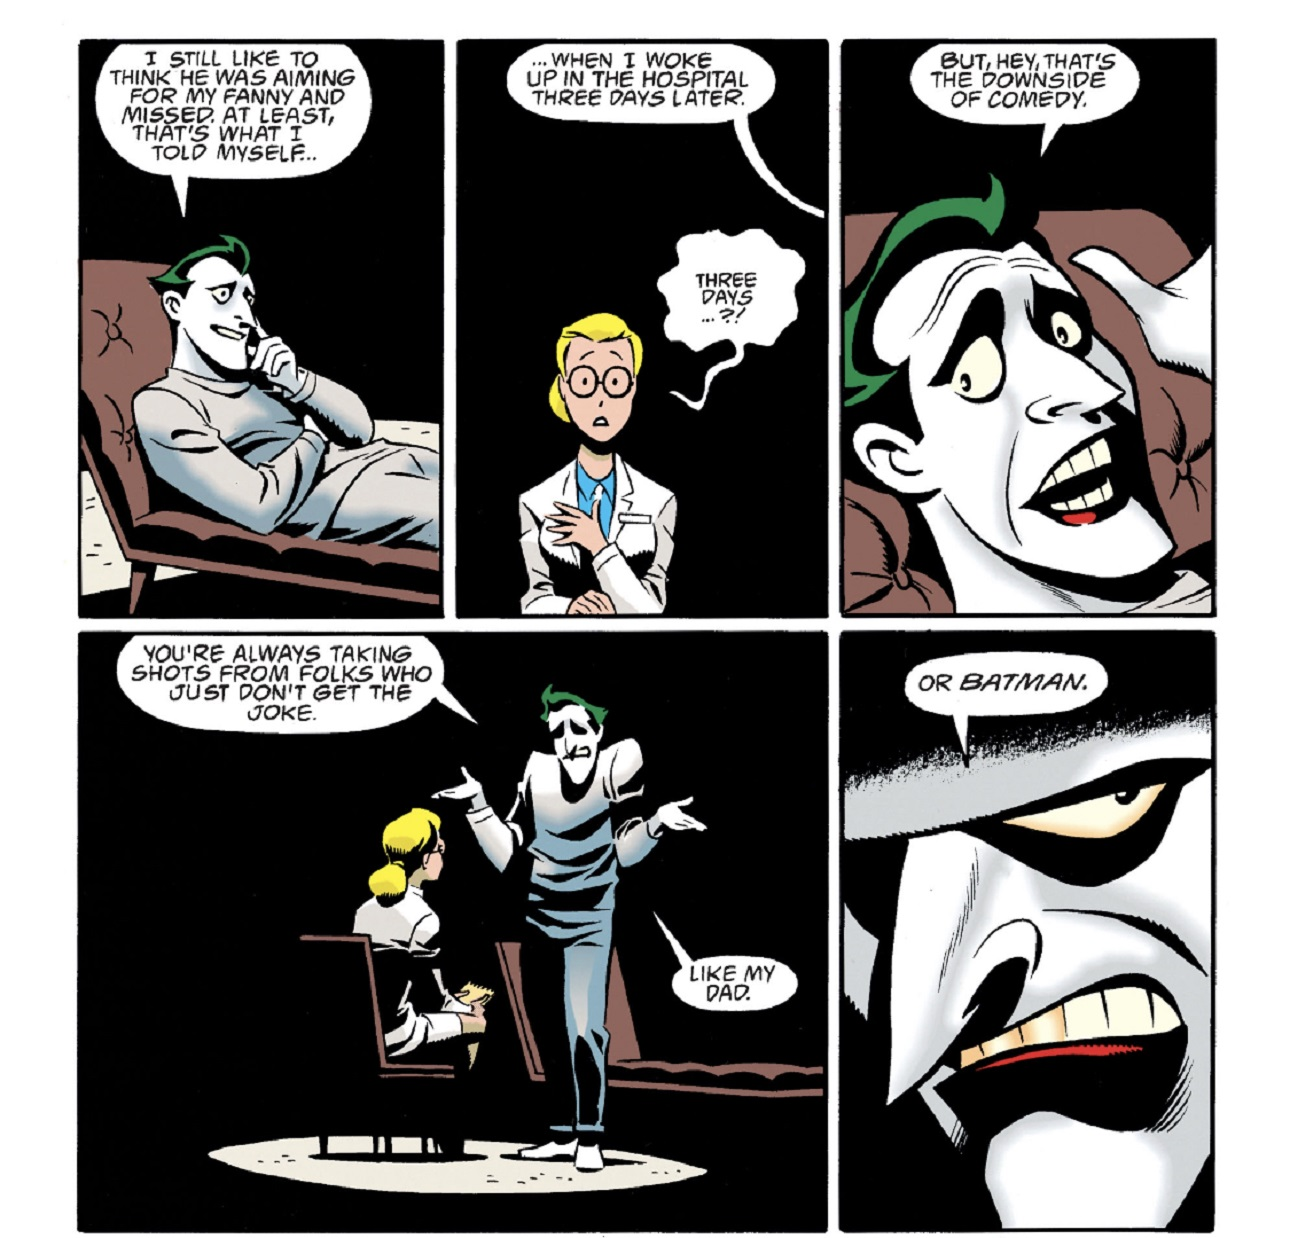 harley-joker-mad-love.jpg